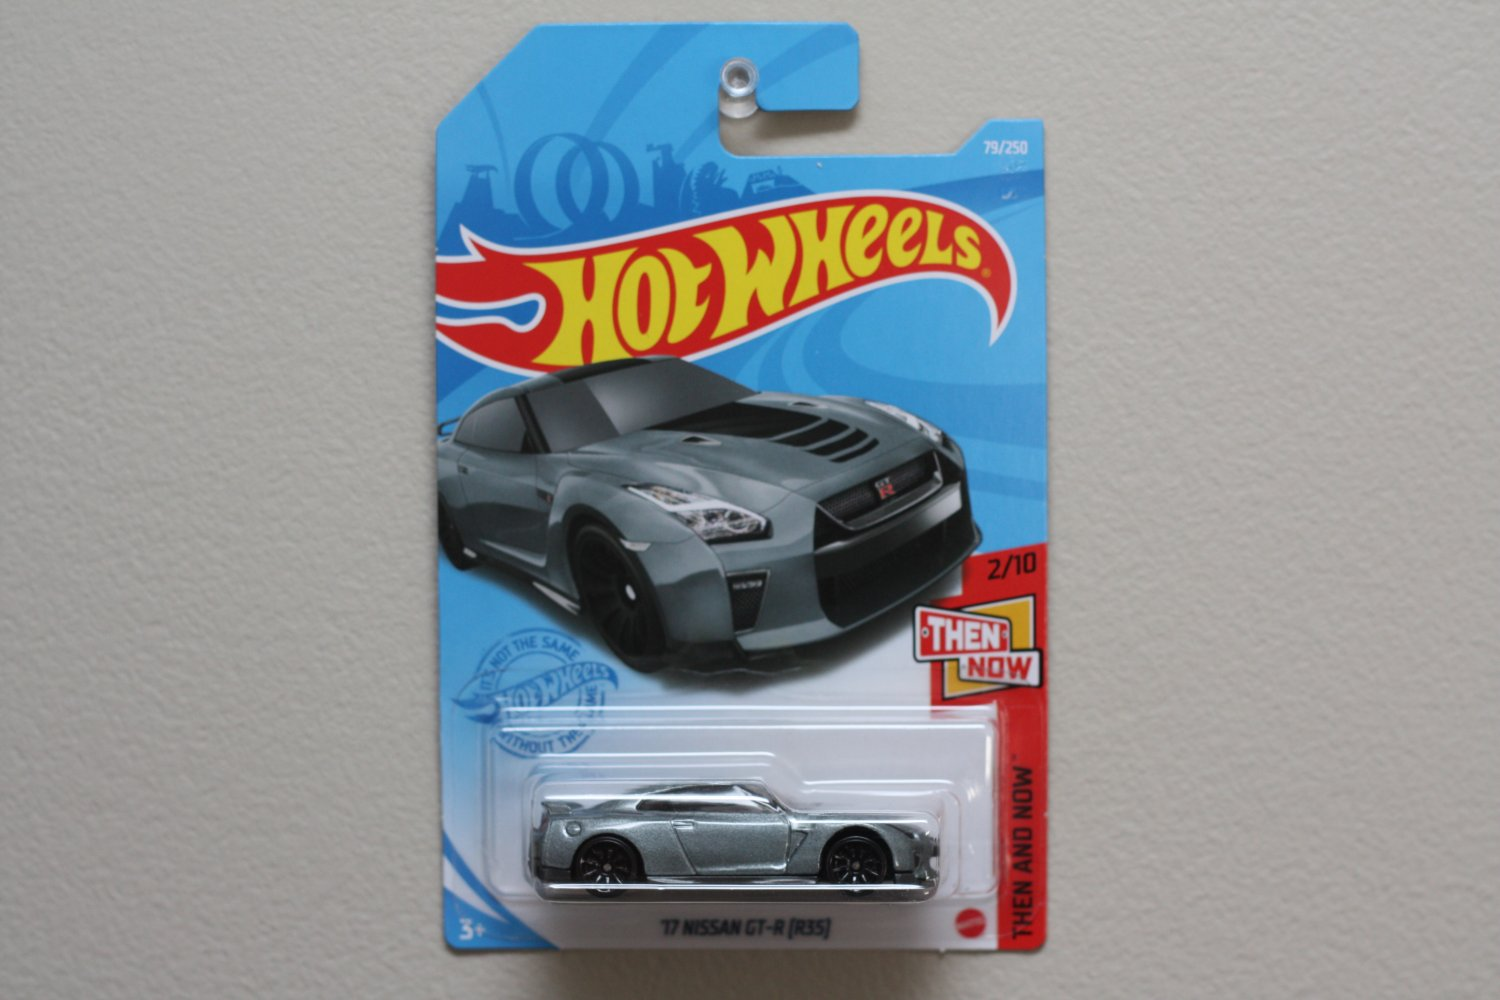 Hot Wheels 2021 Then And Now '17 Nissan GT-R [R35] (grey)